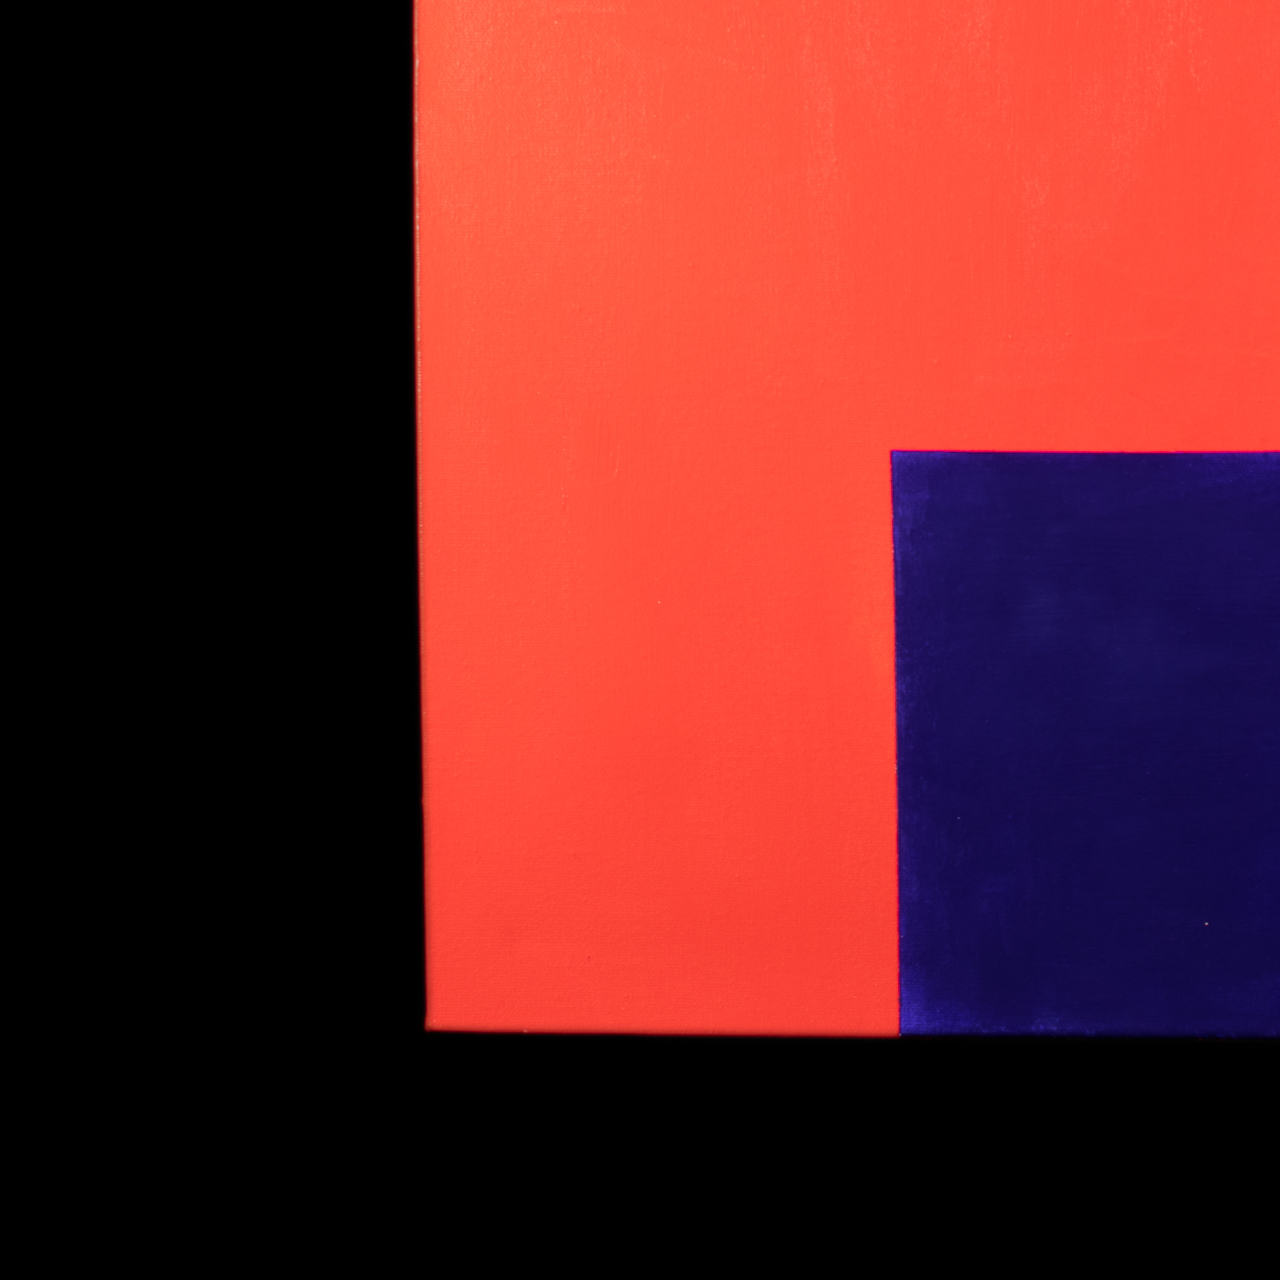 Pair of Contemporary Abstract Paintings Jacob Lloyds - Image 4 of 13